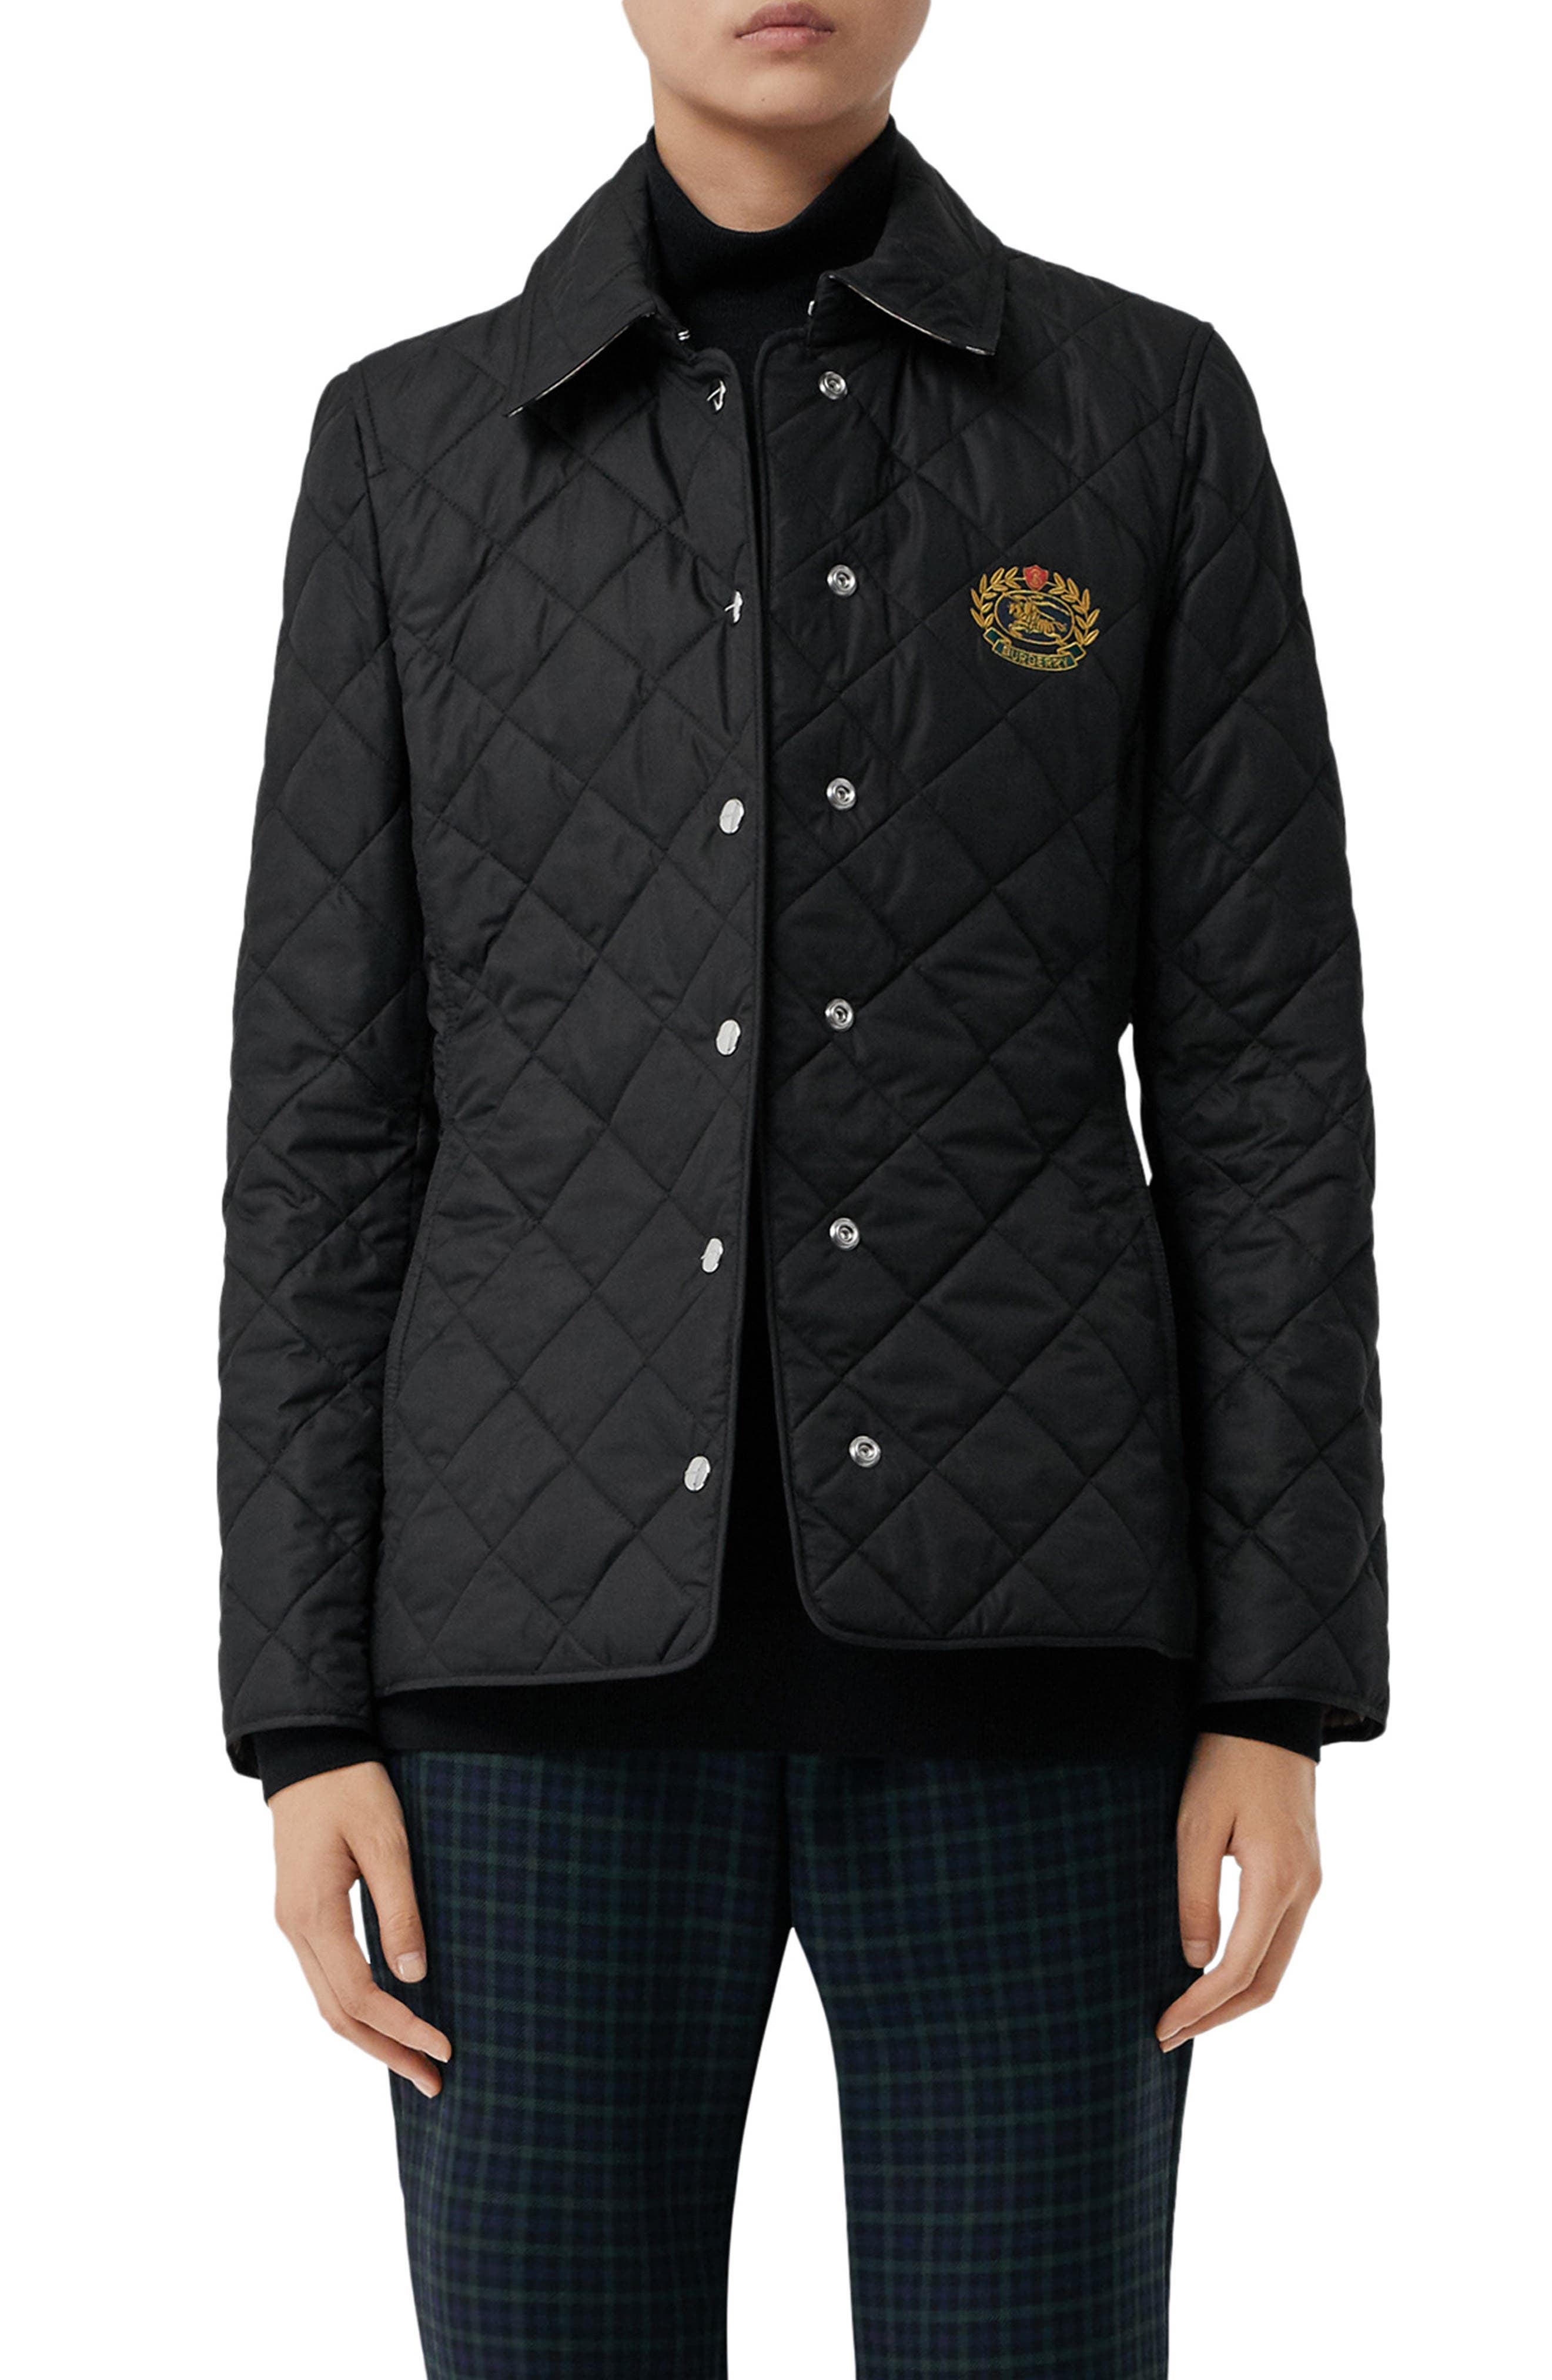 Franwell Diamond Quilted Jacket,                             Main thumbnail 1, color,                             BLACK